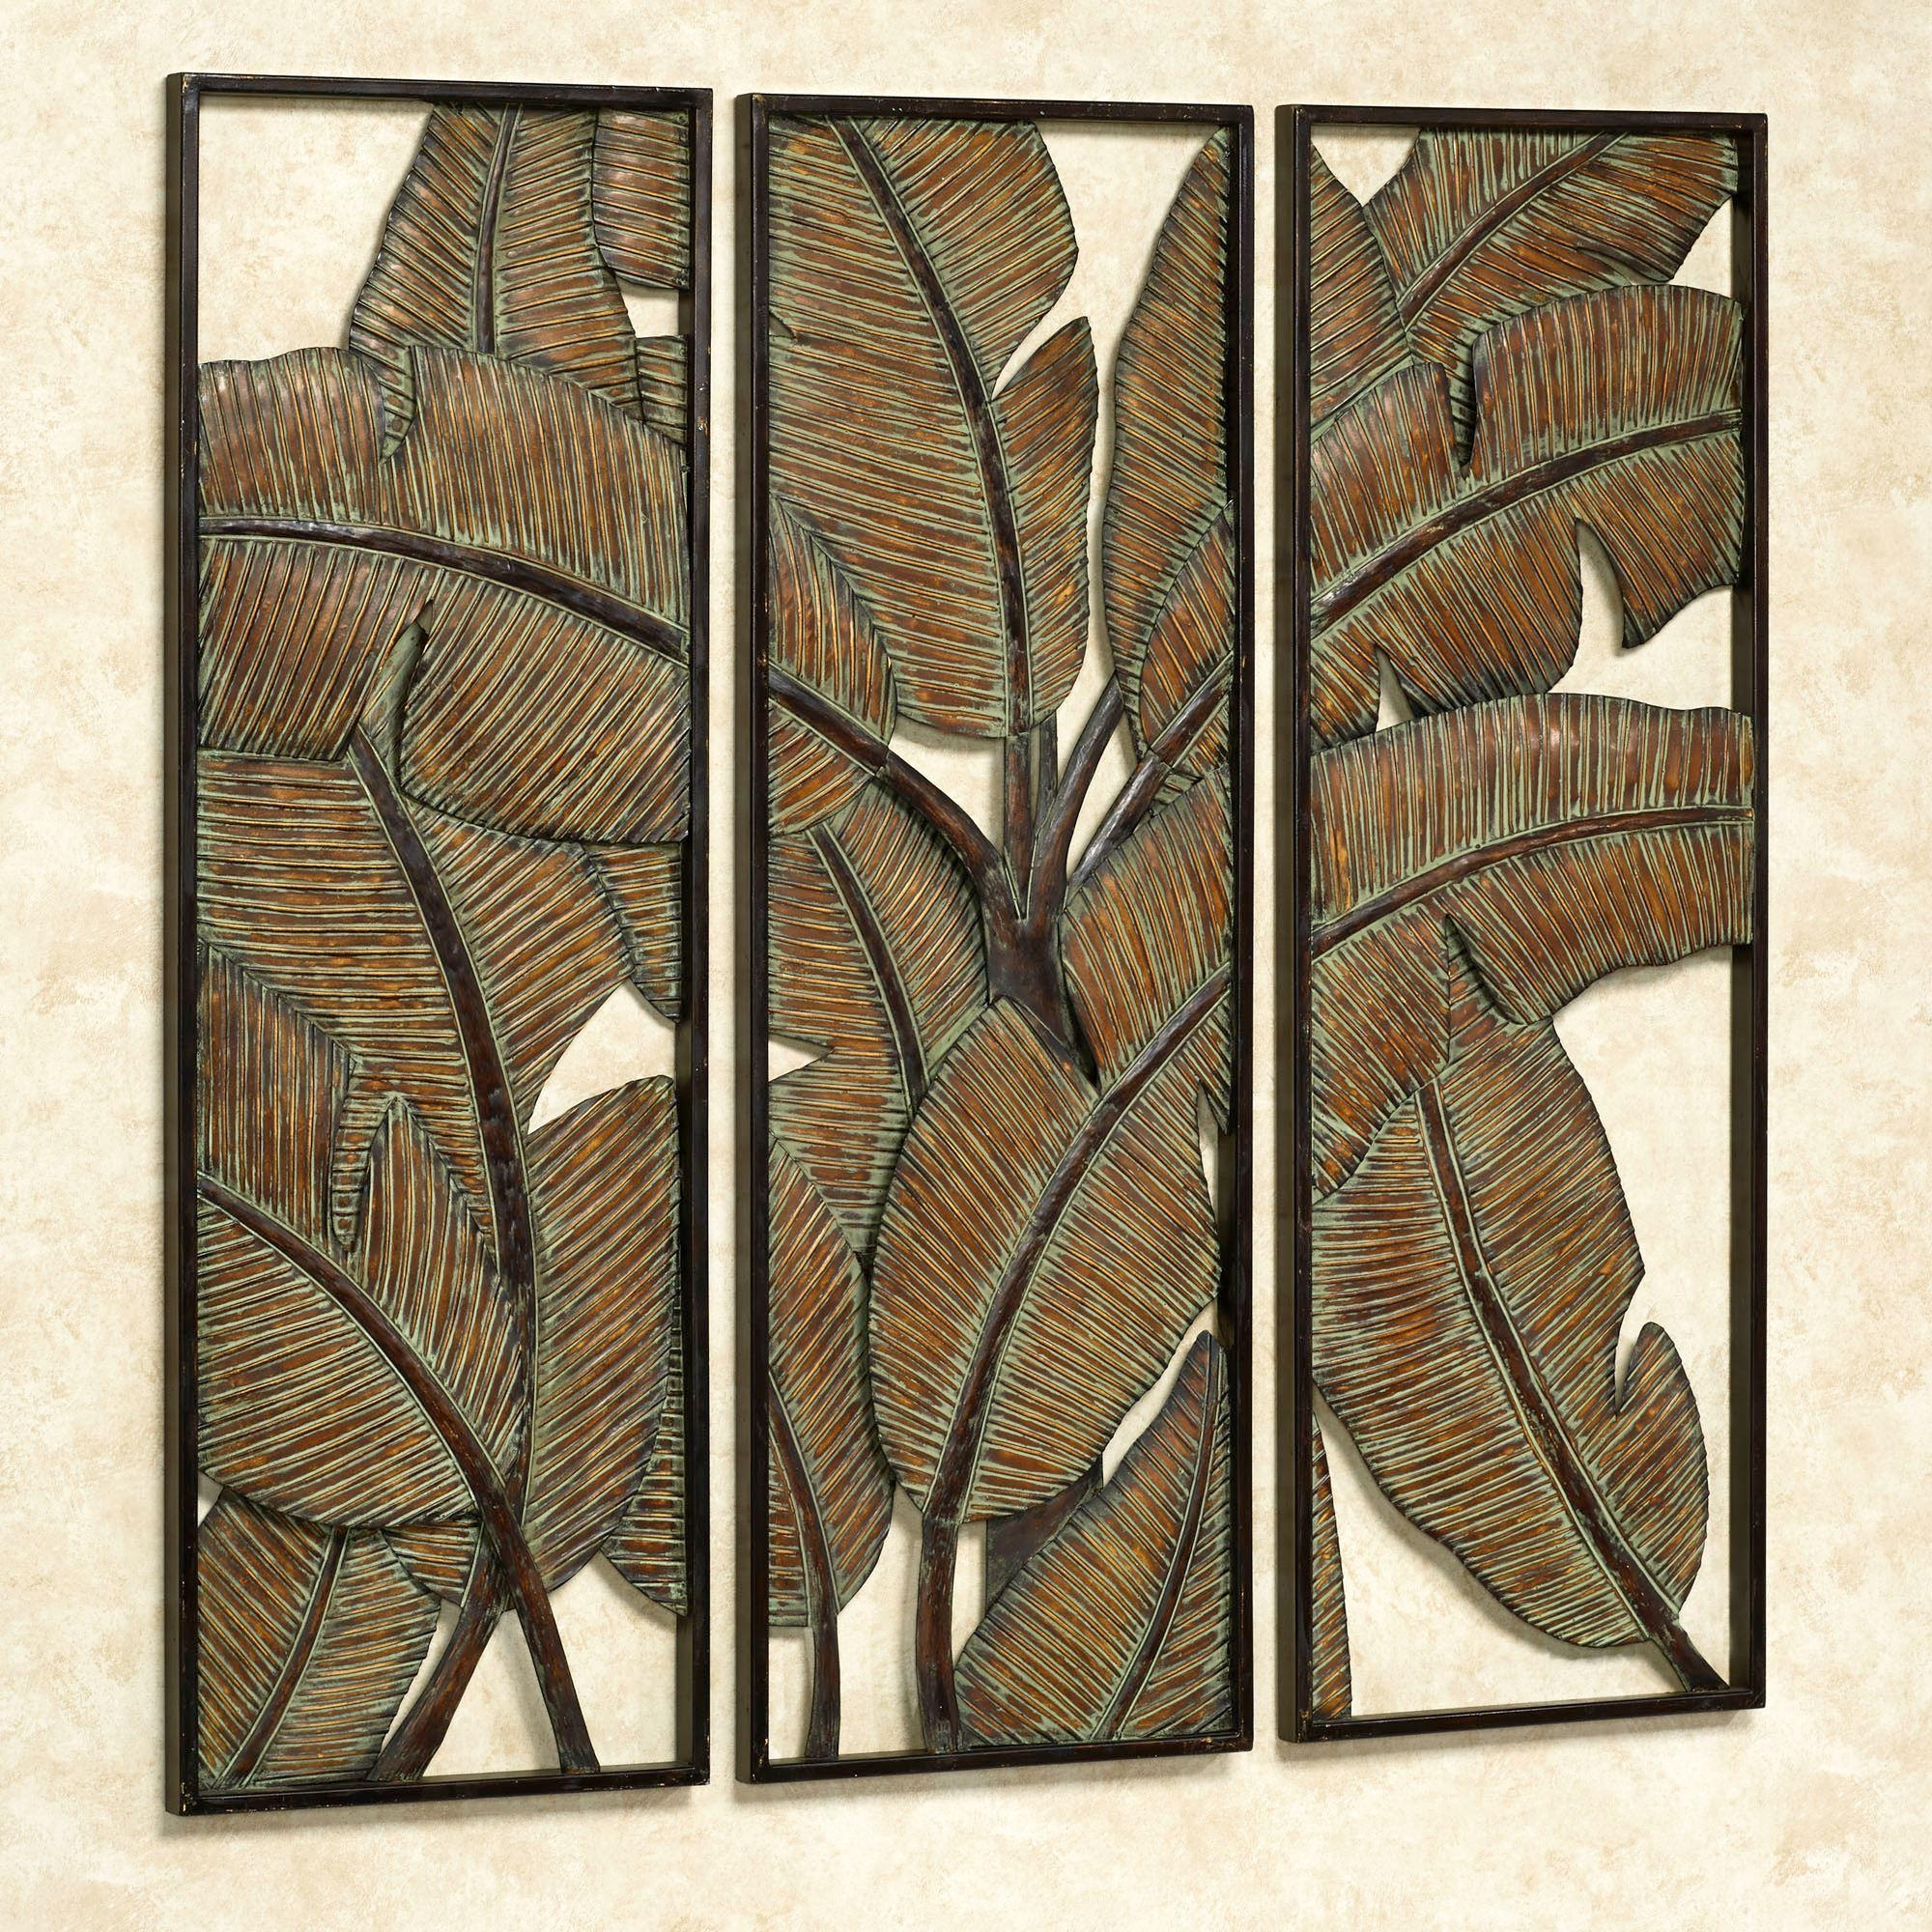 Appealing Metal Wall Decor Bathroom Wall Art Contemporary Or Metal With Wood And Iron Wall Art (Image 1 of 20)